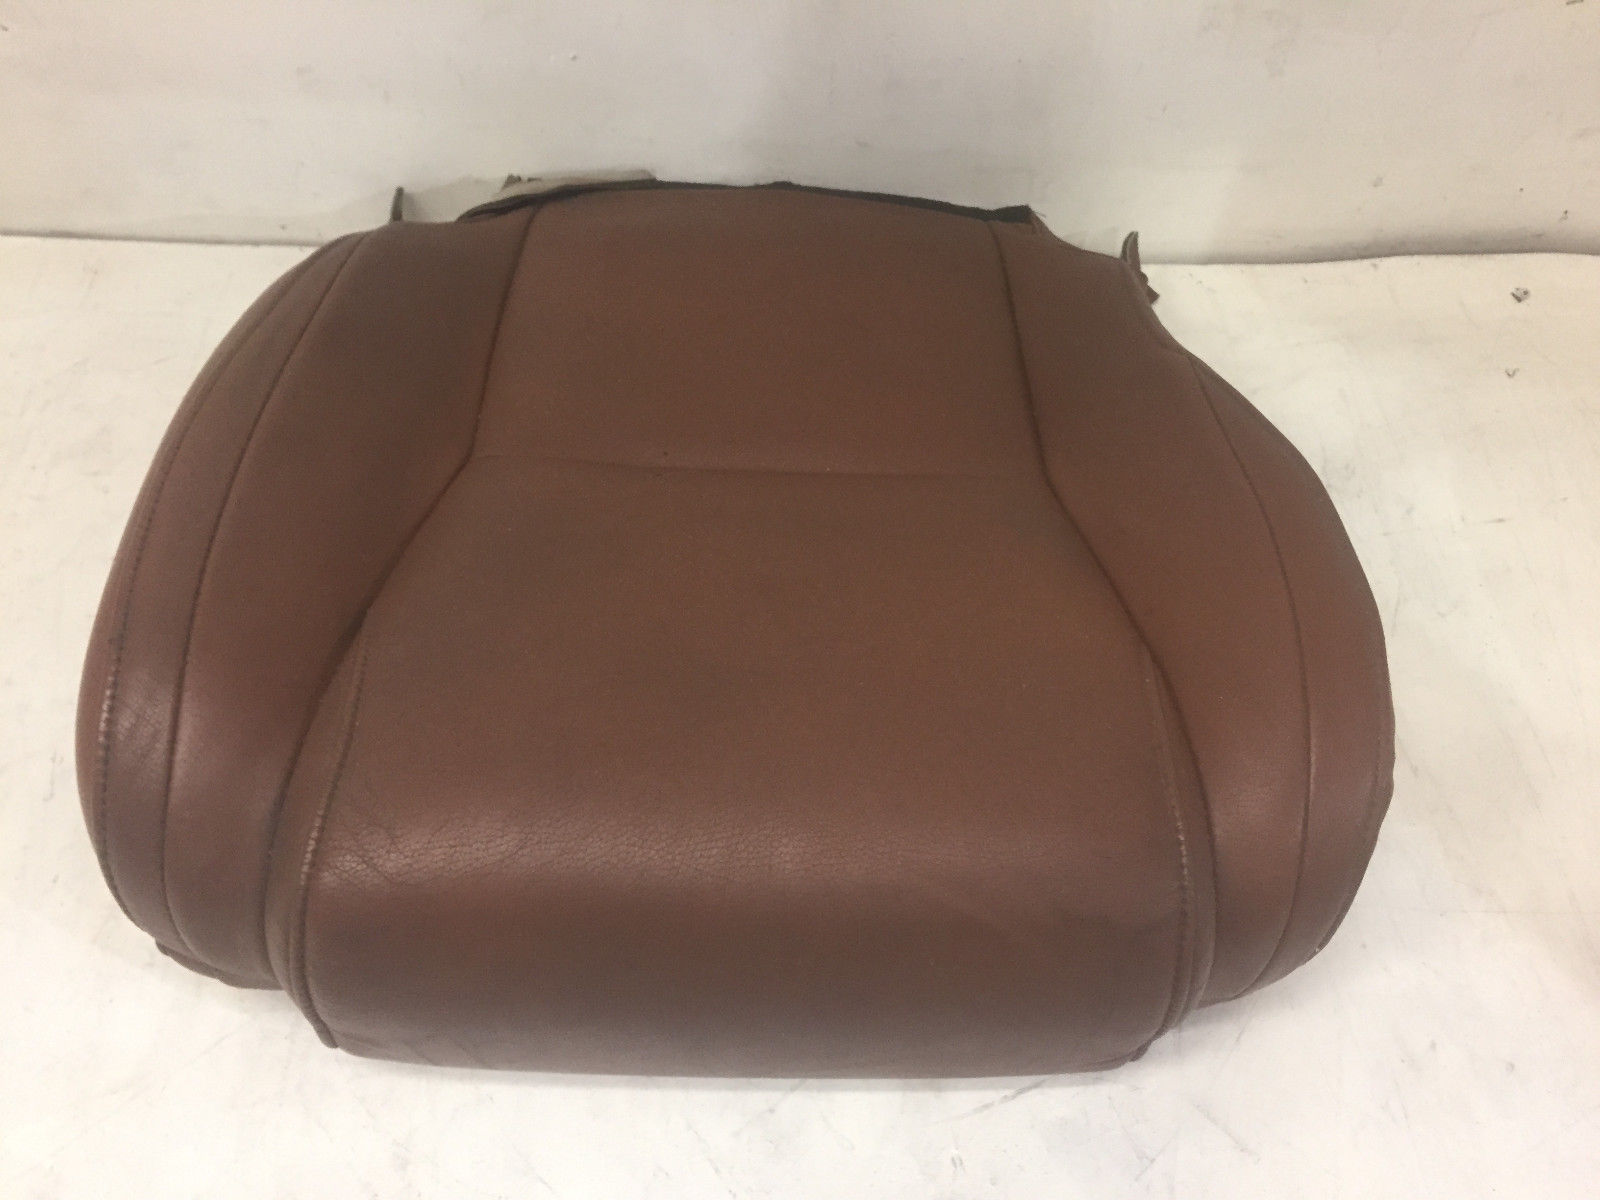 2007 Toyota Tundra Front Right Passenger Said Lower Leather Original Seat